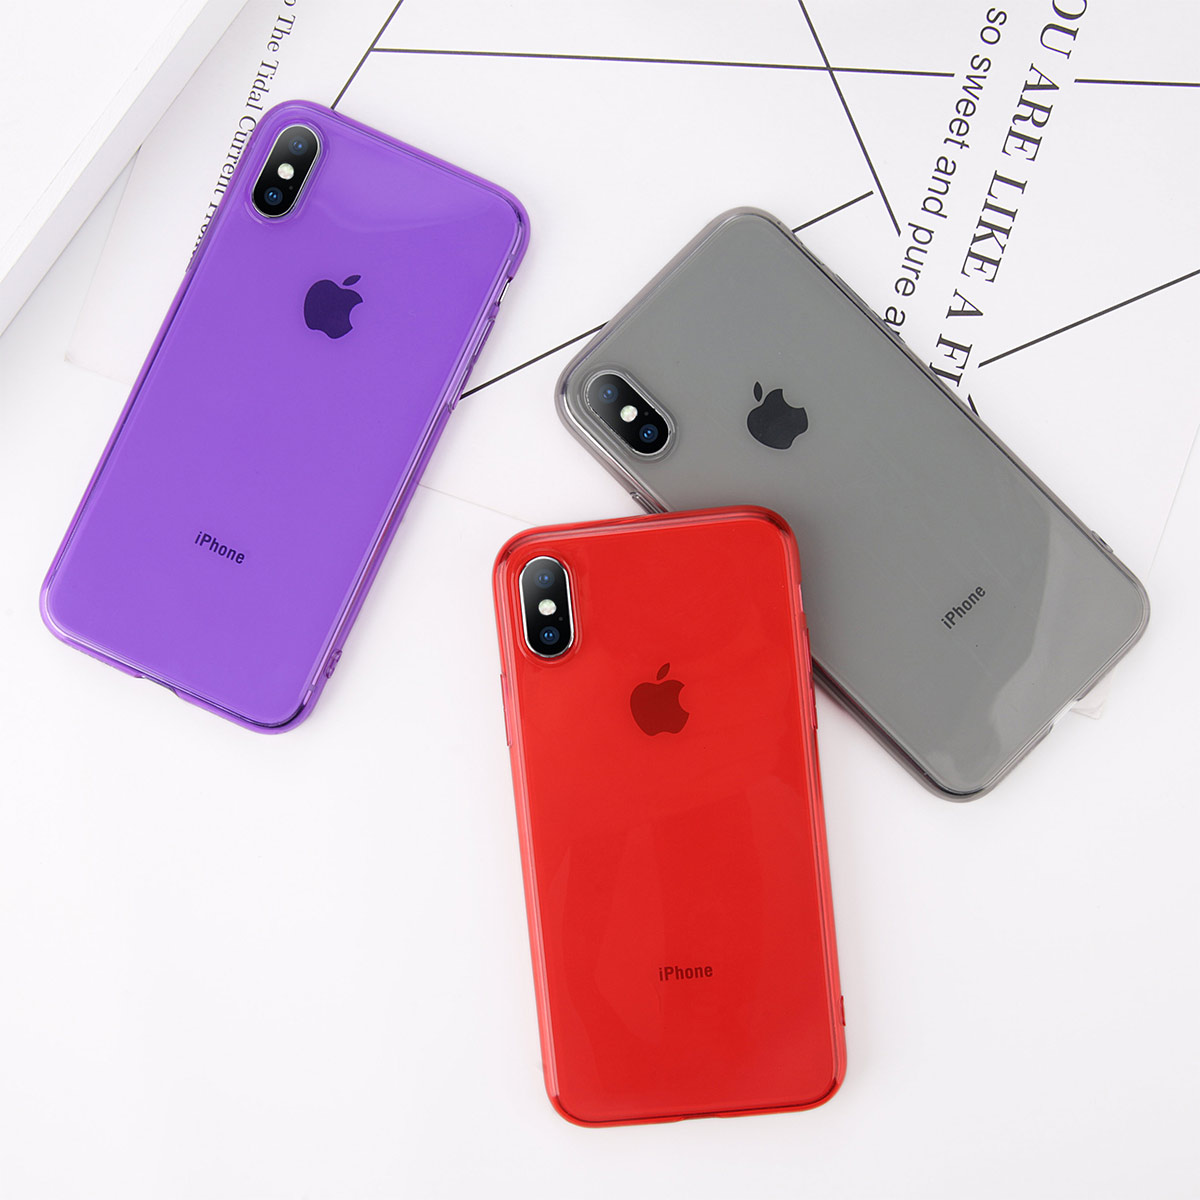 ed68ecb8e91b7 KJOEW Soft Transparent Case For iPhone X 6 6S 7 8 Plus Solid color Back  Cover. US  0.99. Luxury Plating Clear ...